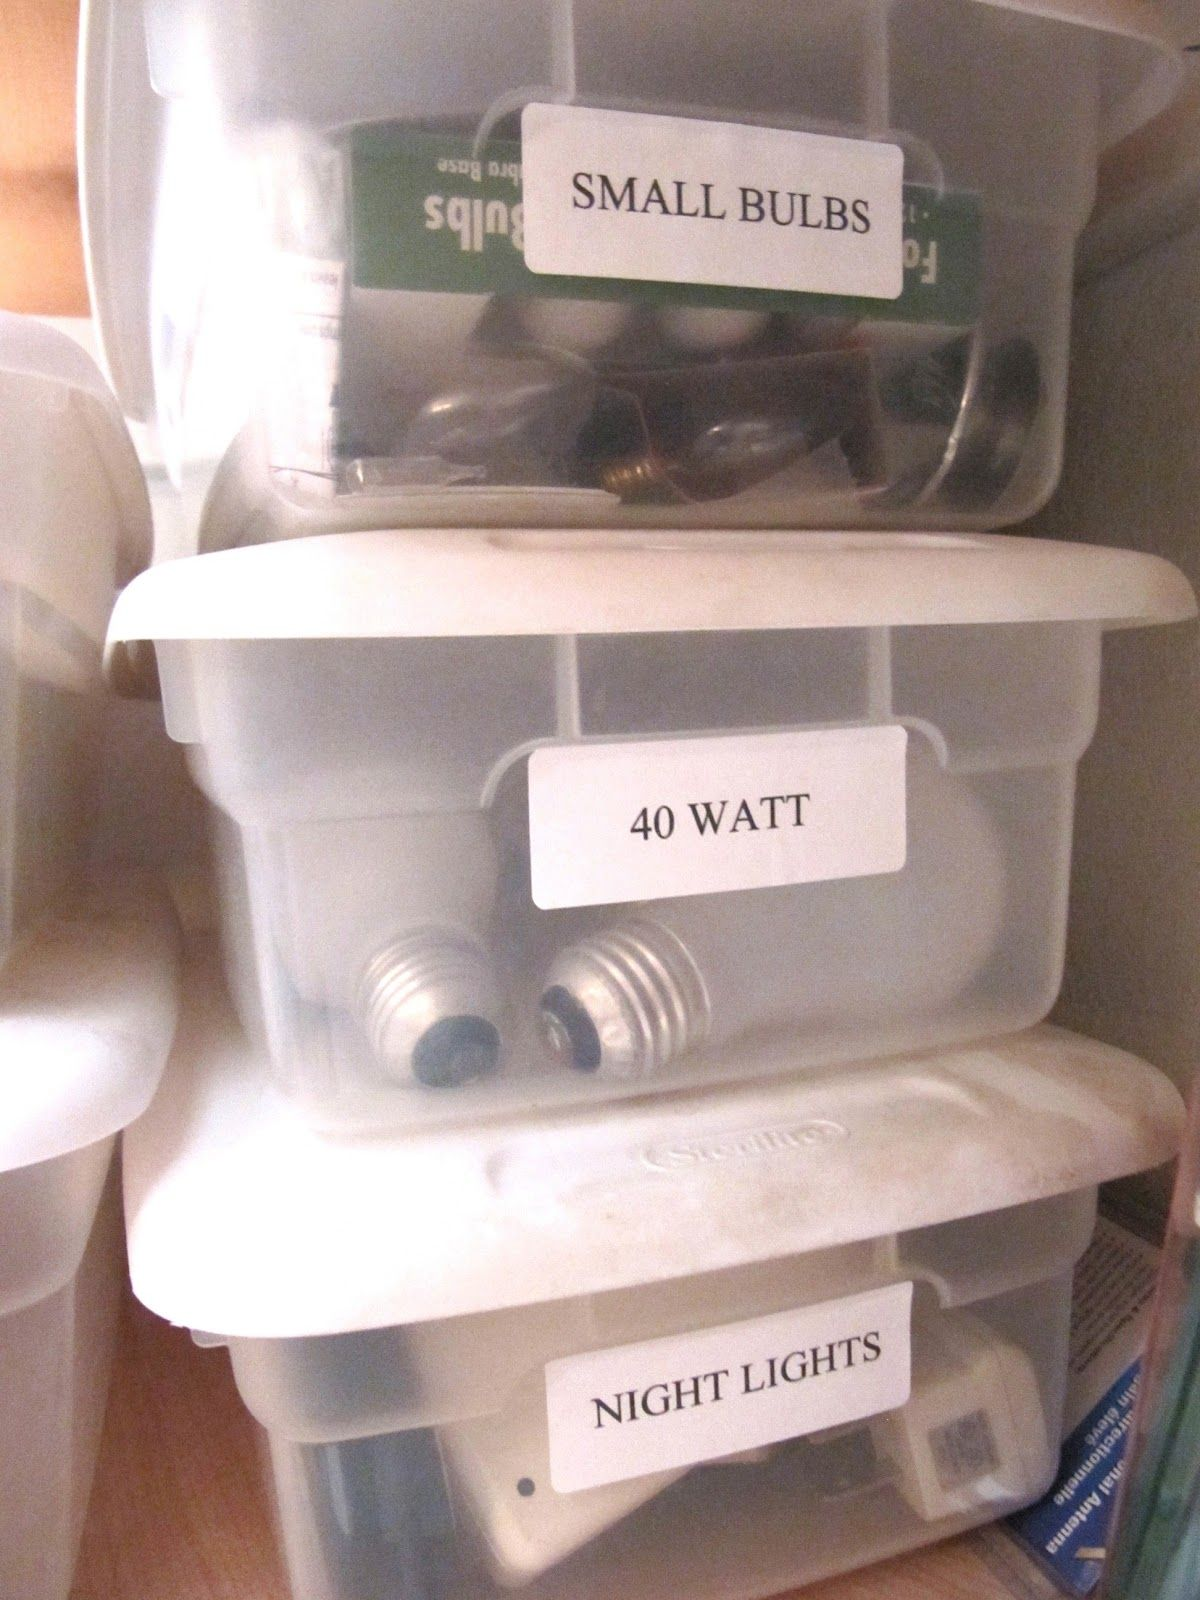 Closet Storage Organize Light Bulbs In Clear Plastic Shoe Box Containers